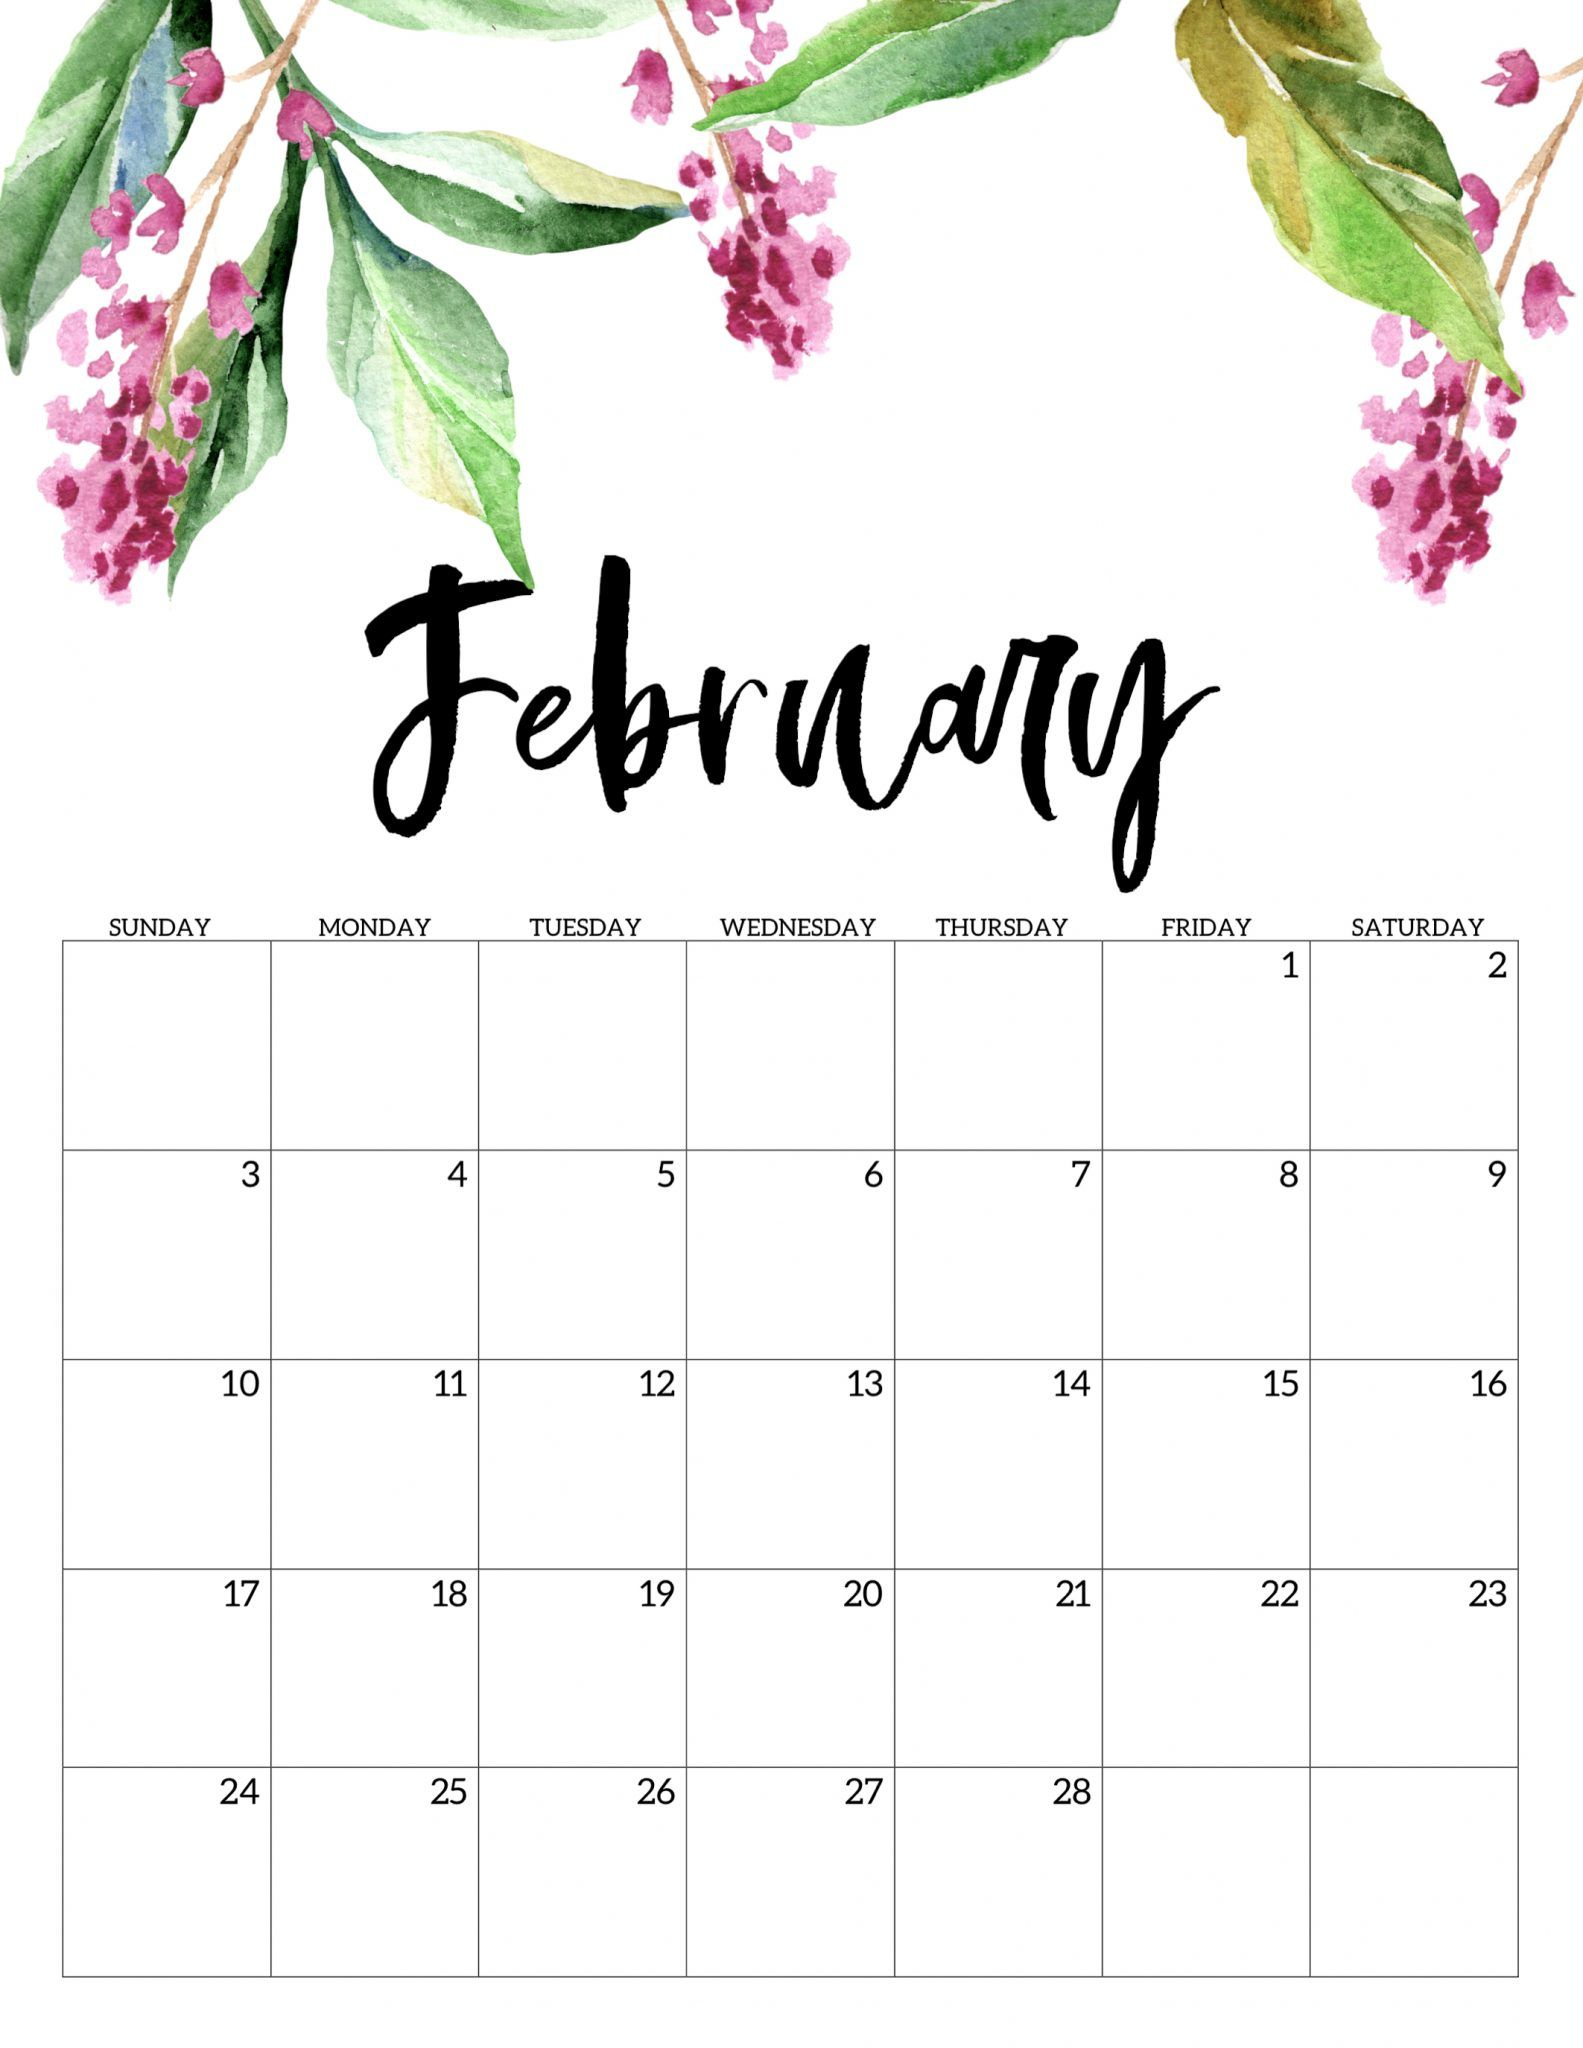 Pretty Calendar 2019 Printable February Cute February 2019 Printable Calendar #February #February2019